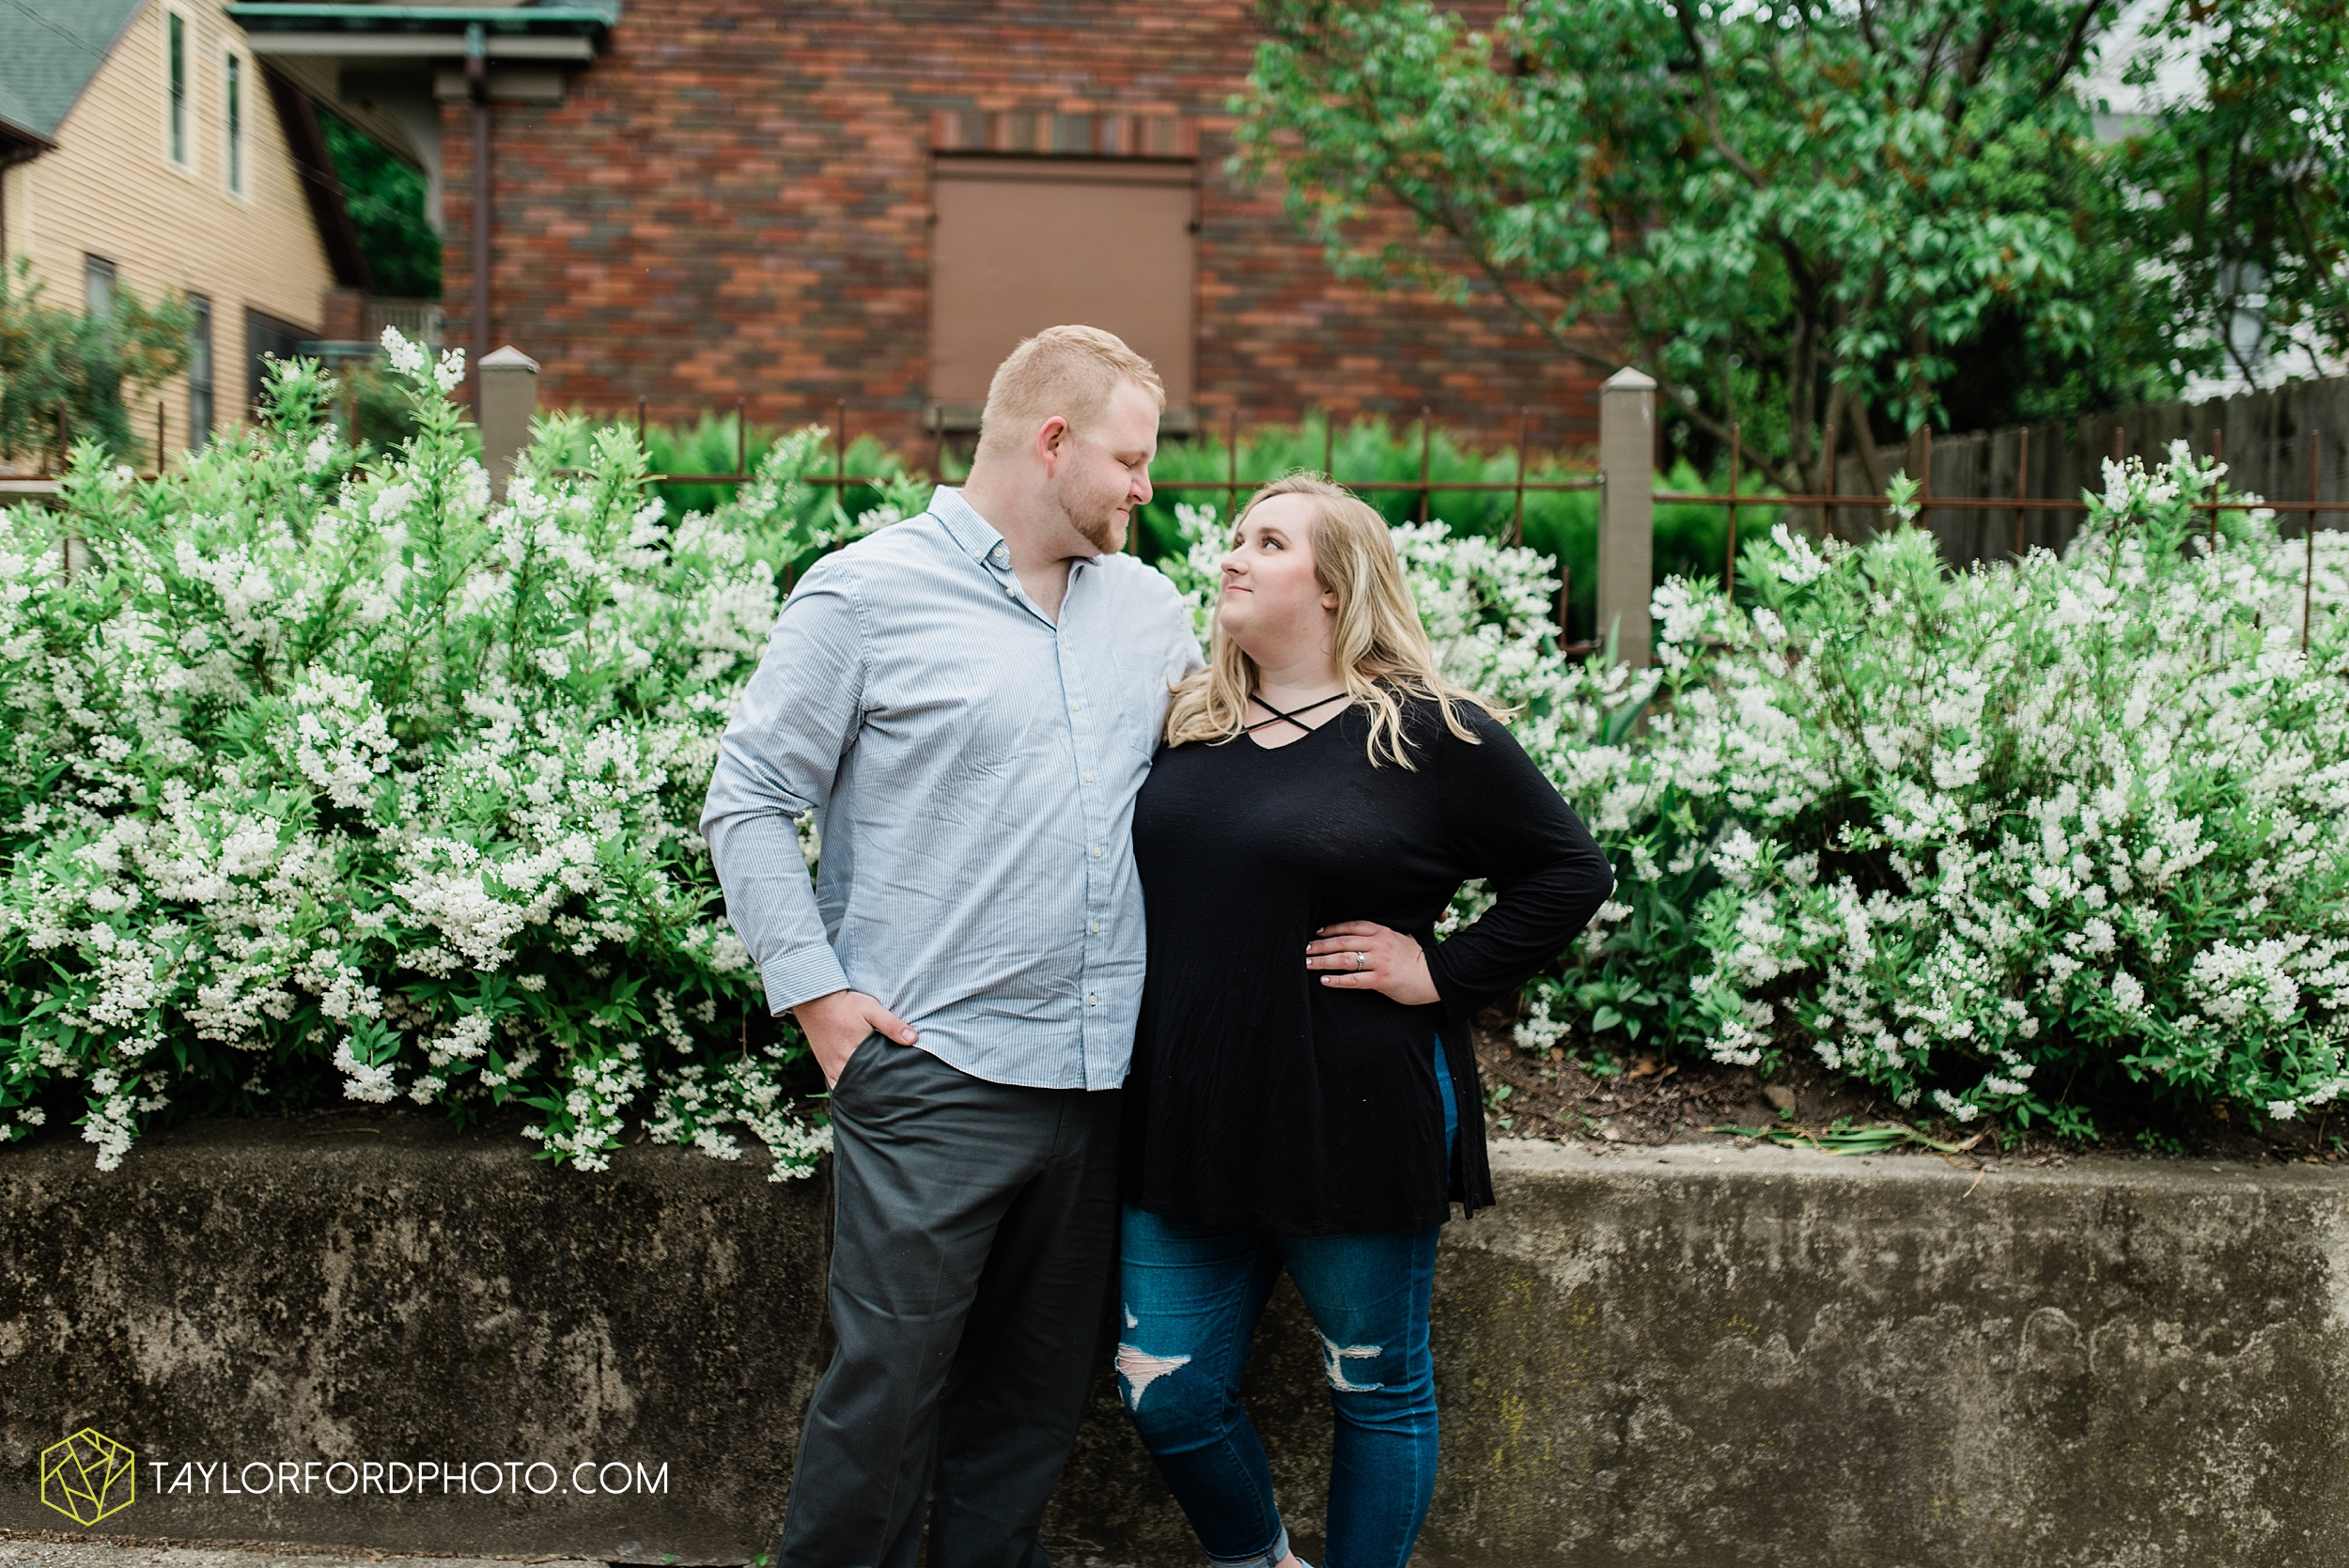 downtown-ipfw-fort-wayne-indiana-engagement-photographer-Taylor-Ford-Photography_7513.jpg